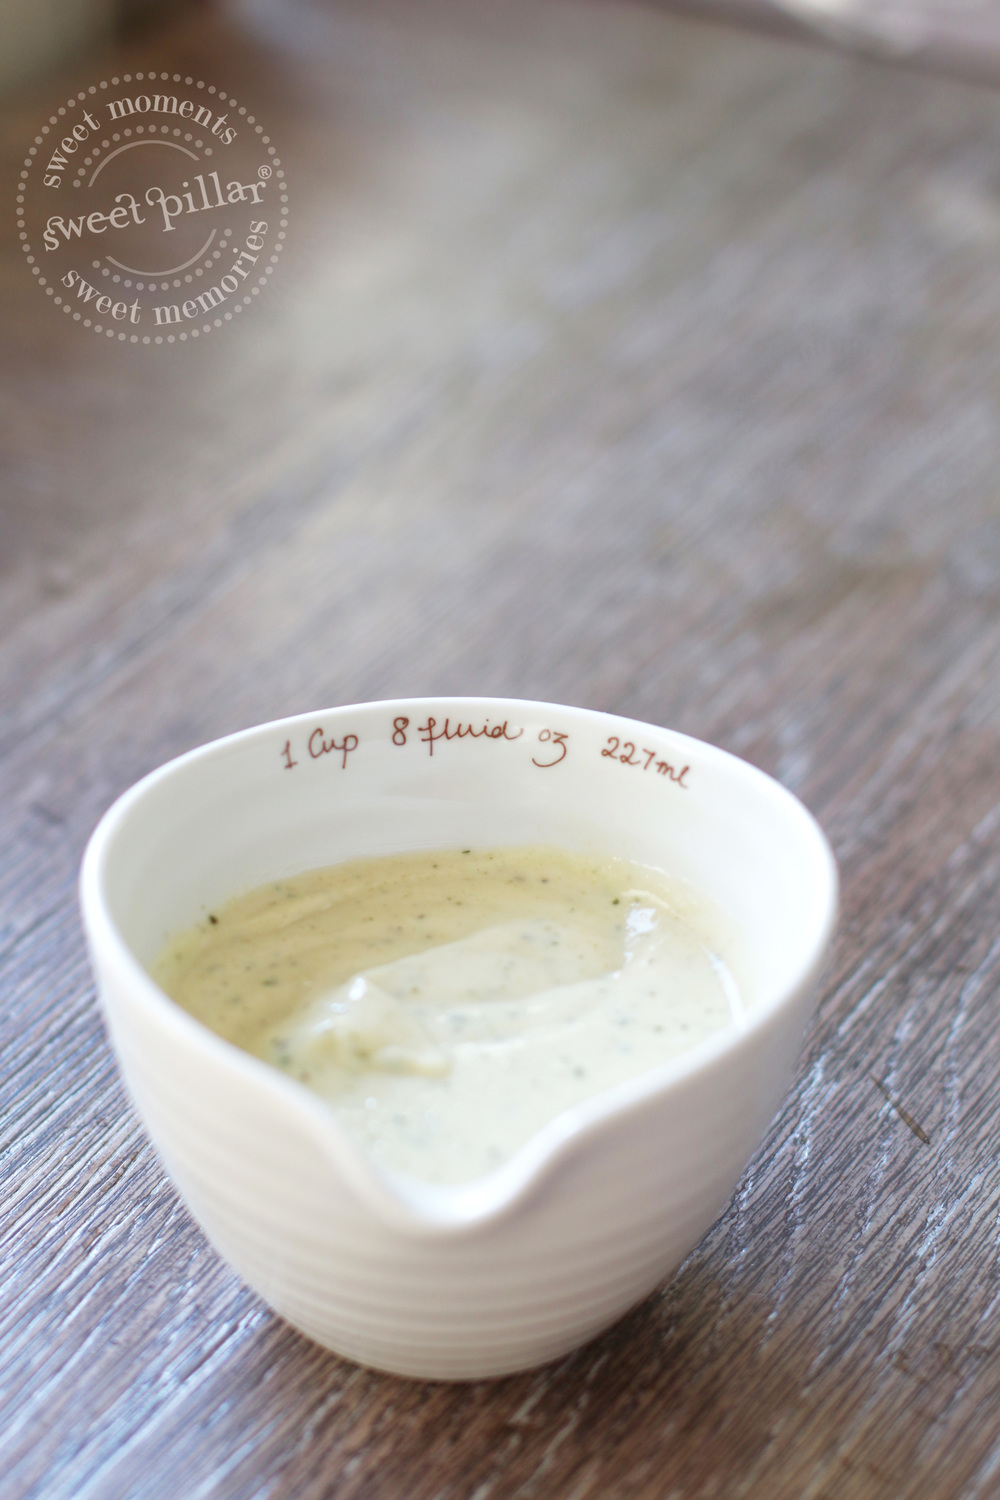 This dressing is everything.  Make some and store for later!